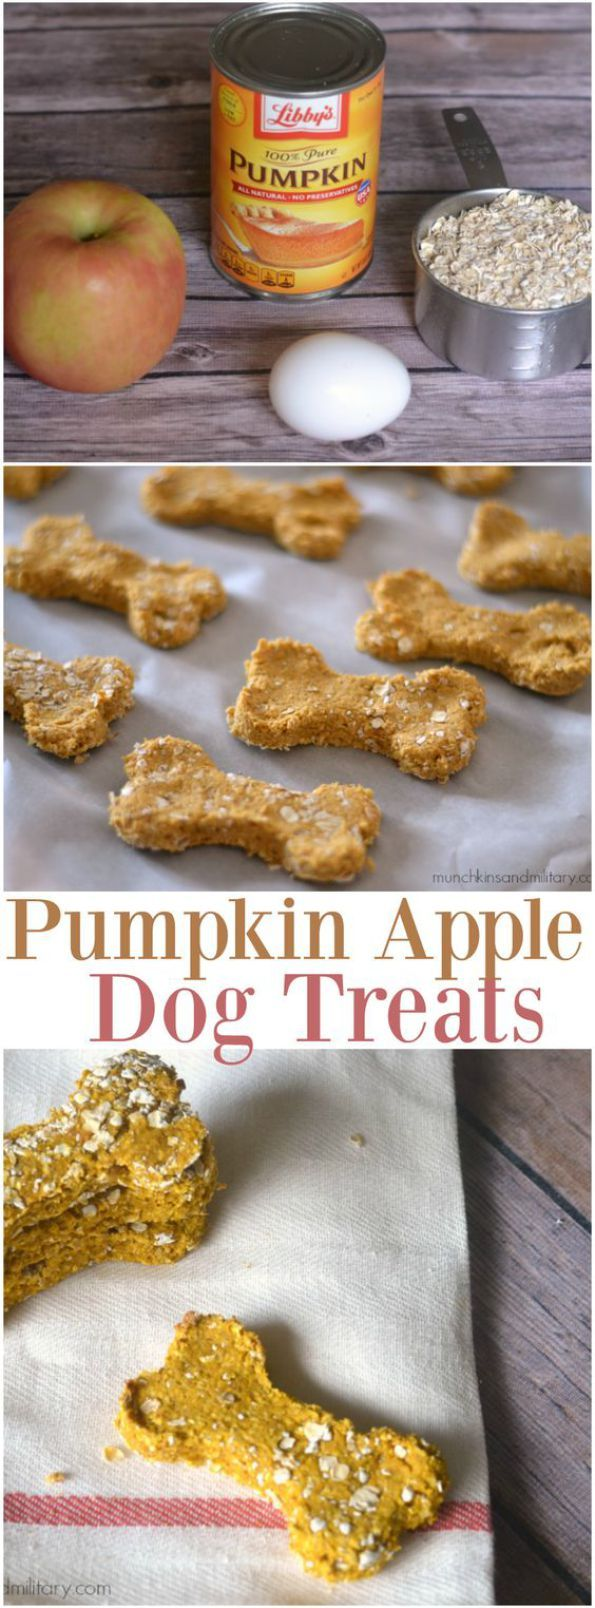 18 DIY Dog Treat Recipes That Your Pooch Will Love You For